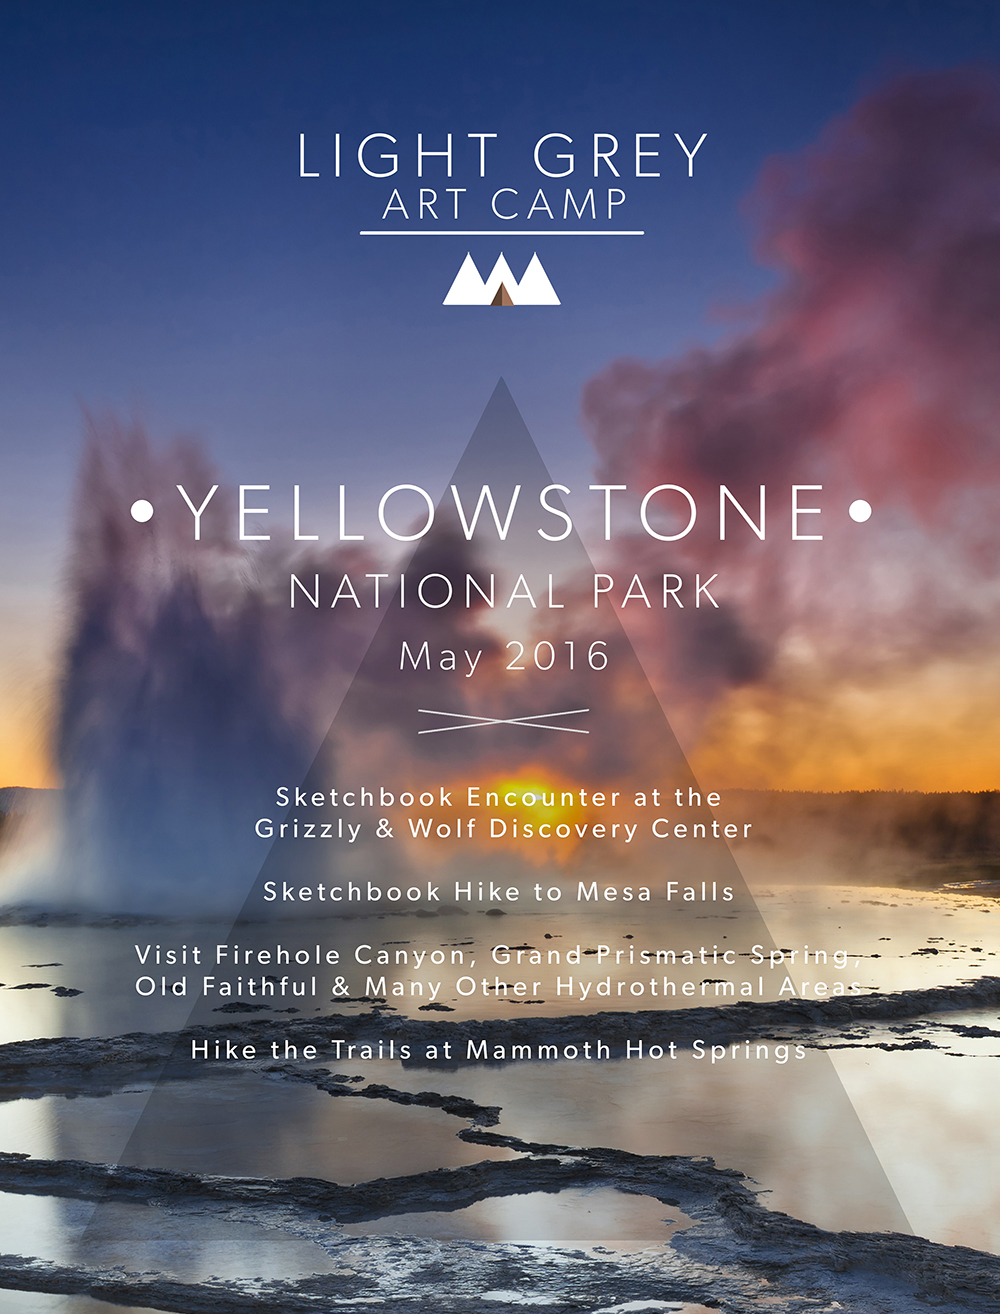 LightGreyArtCamp_Yellowstone_small.jpg